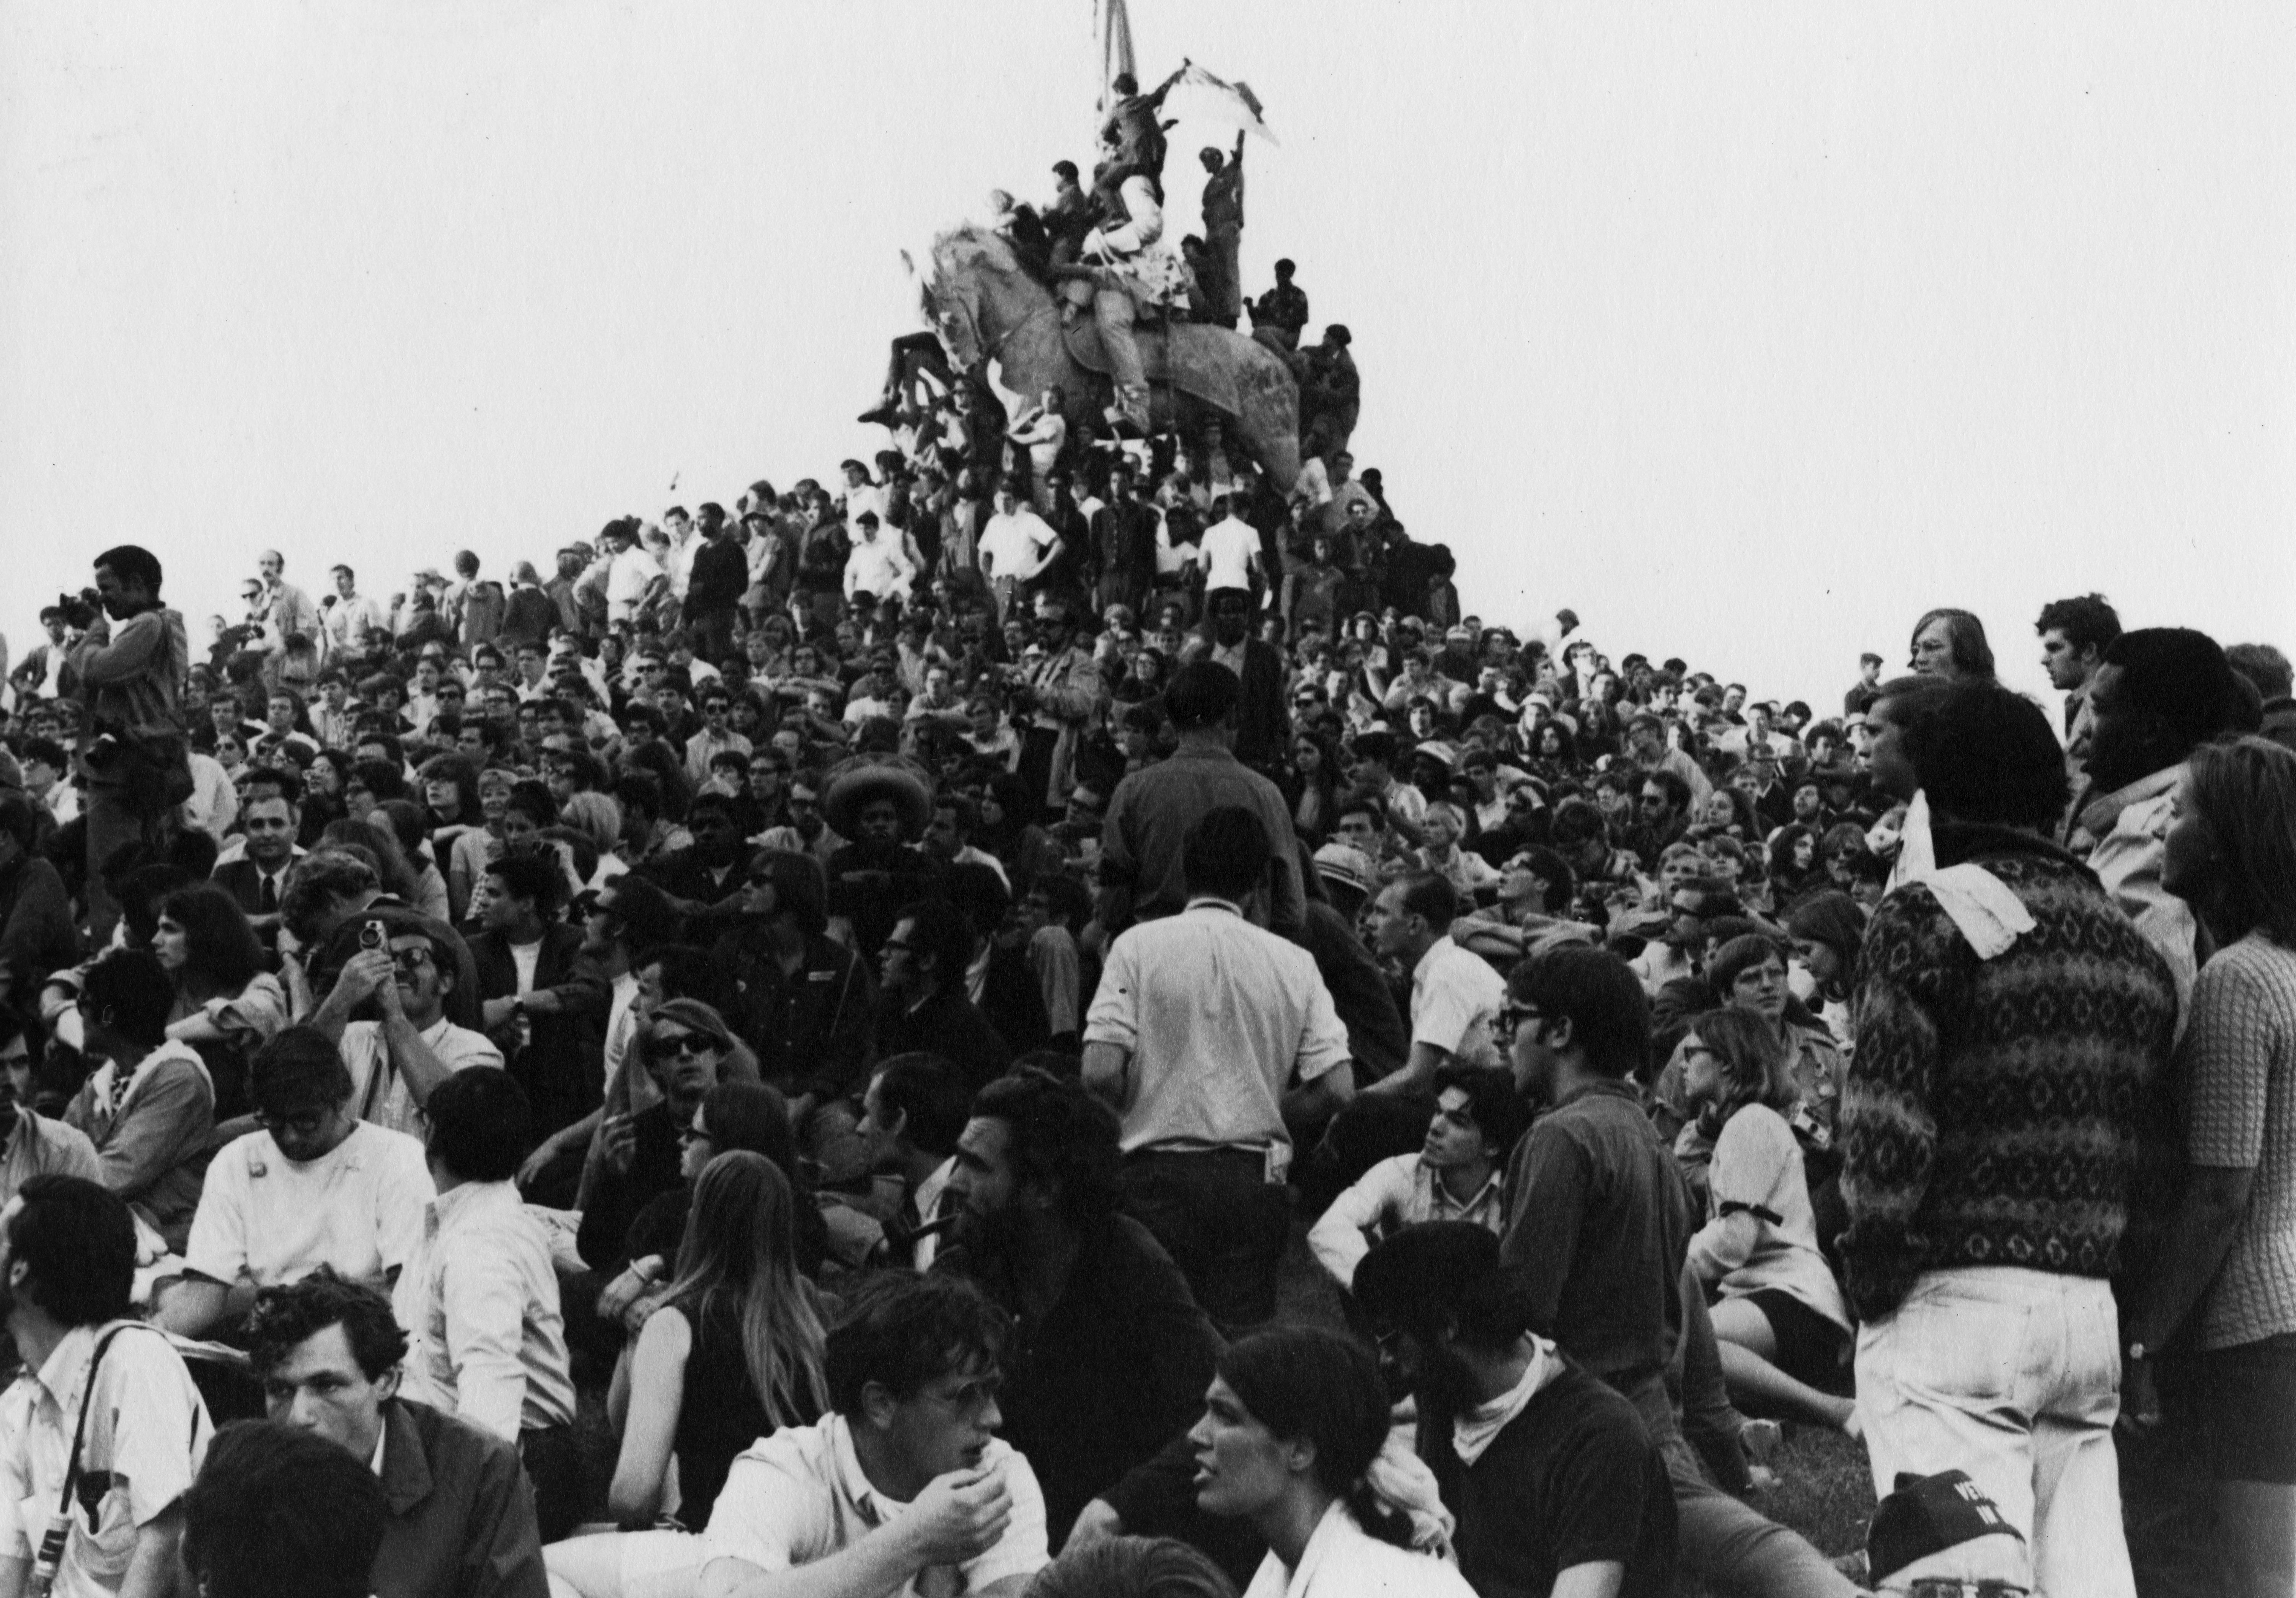 A black-and-white image shows a dense crowd of diverse young people gathered around and upon an elevated statue of a horse. Some people are climbing the horse, with the person at the top waving a flag.